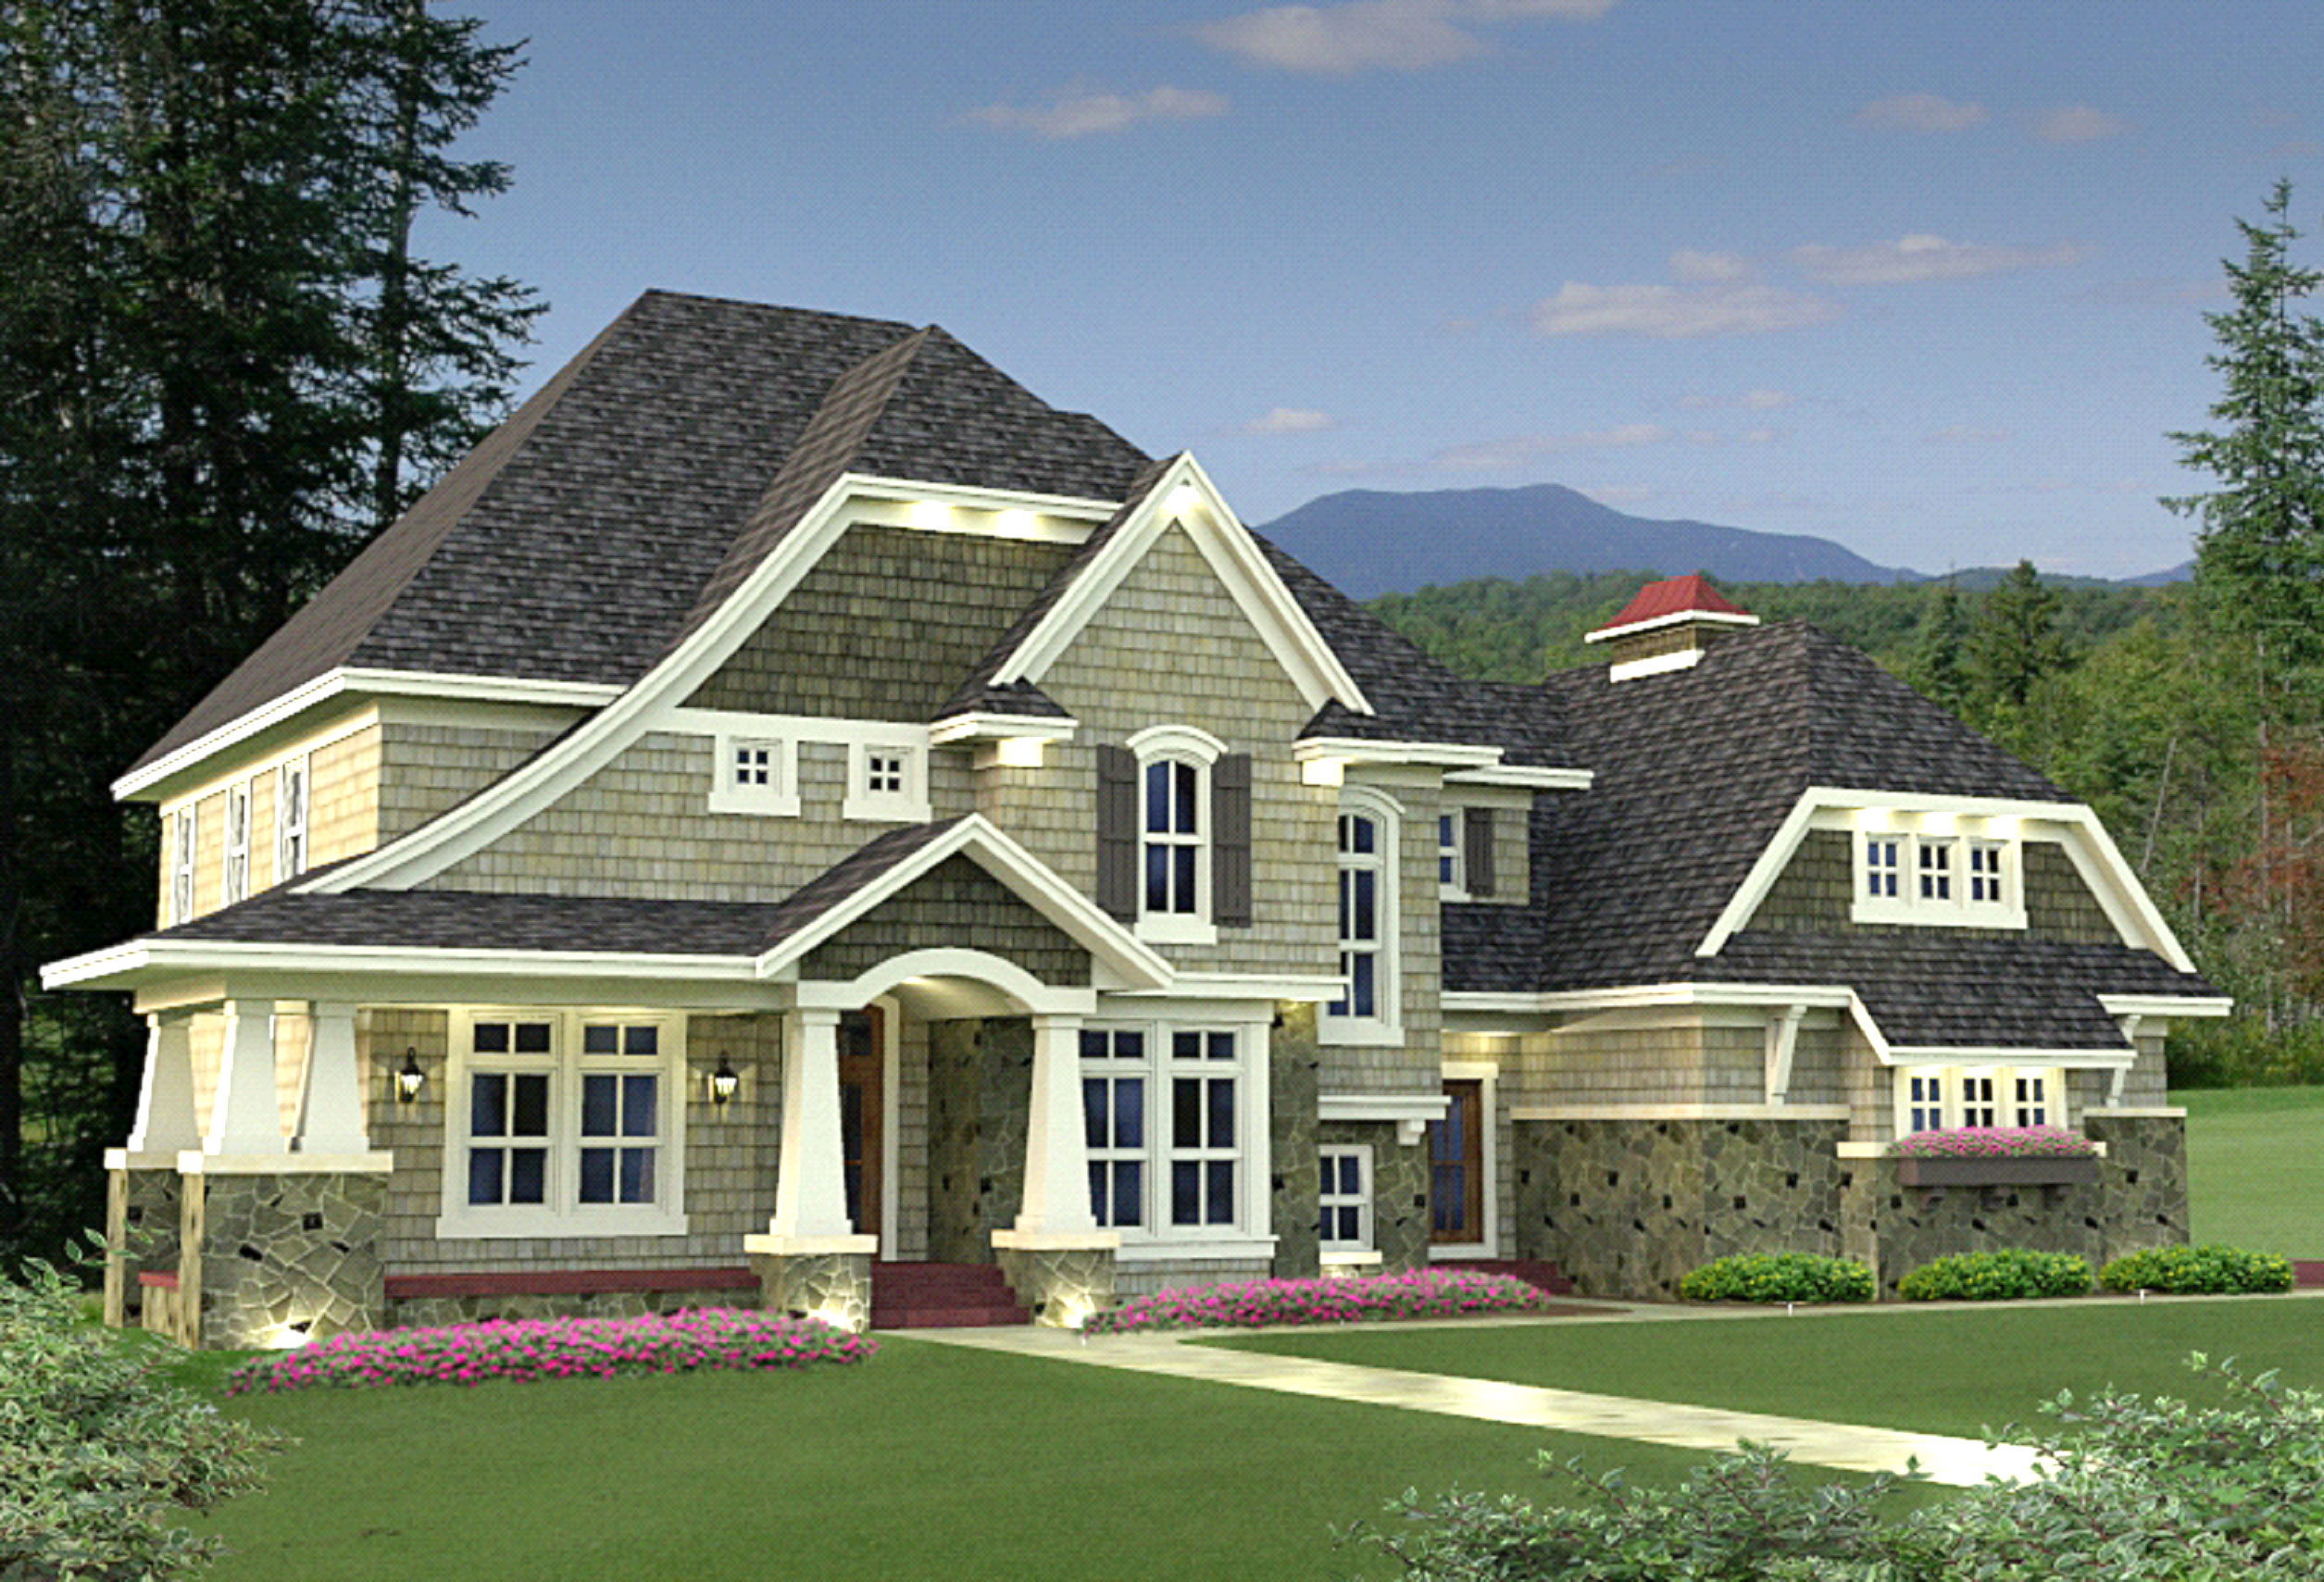 4 Bedroom Shingle Style Stunner 14589rk Architectural